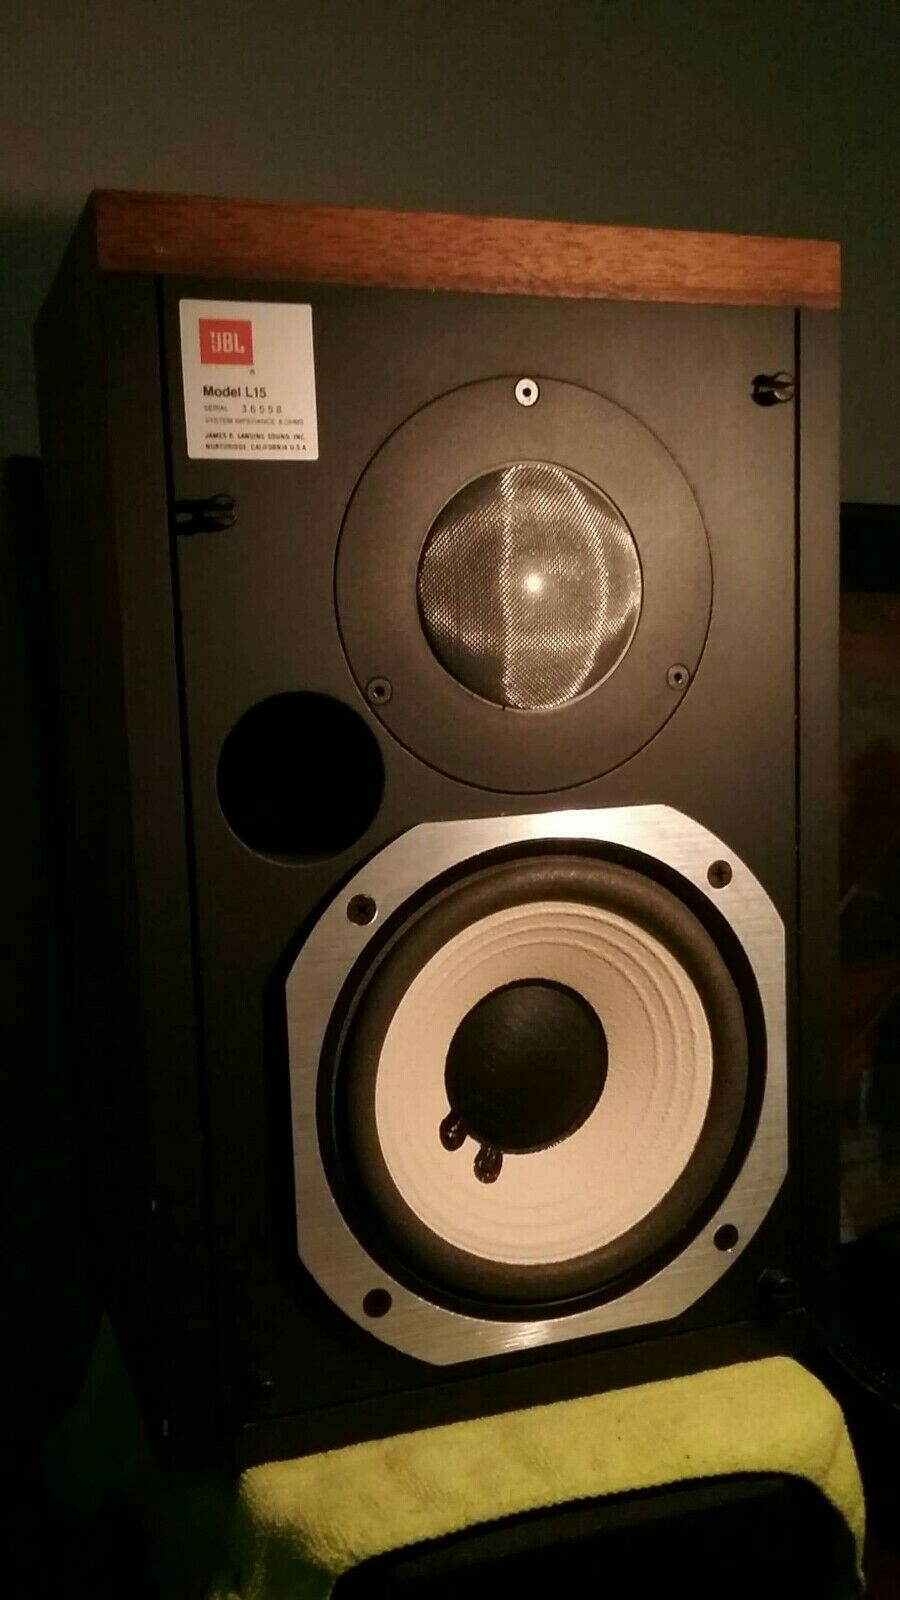 s l1600 - JBL L15  Classic Monitor speakers - All Original drivers in Perfect condition !